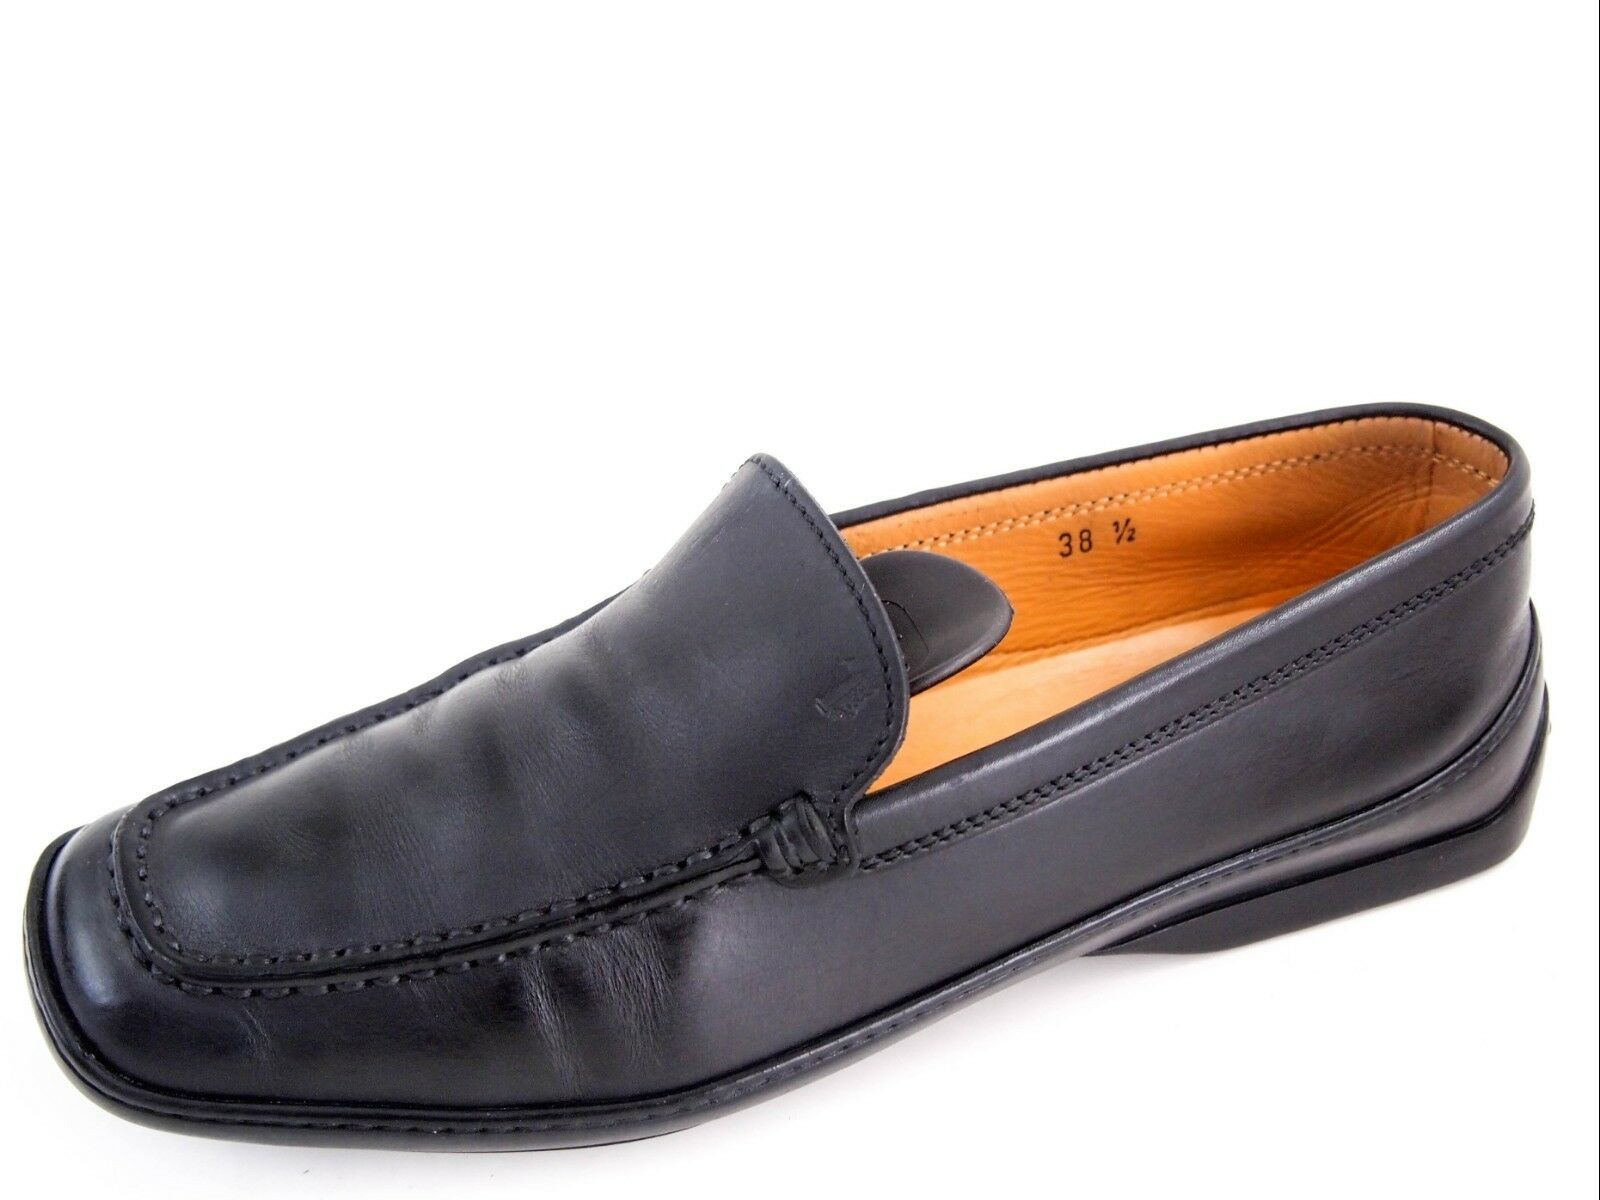 TOD's moccasins loafers, black leather, women's shoe size, US 8.5 $450